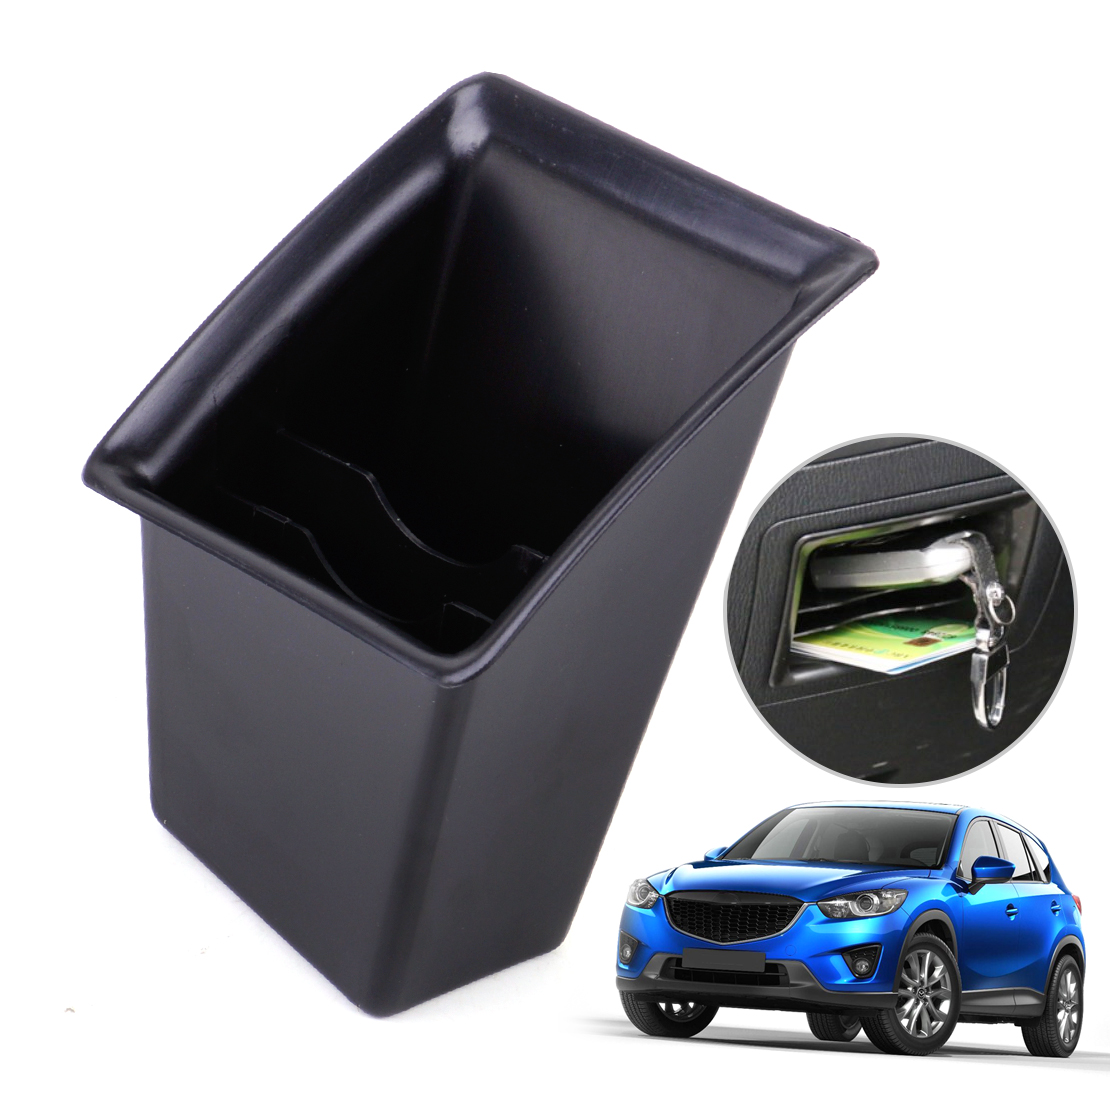 DWCX New Car Black Left Central Control Storage Box Auto Container Holder Shelf Fit for Mazda CX5 2011 2012 2013 2014 2015 цена 2017